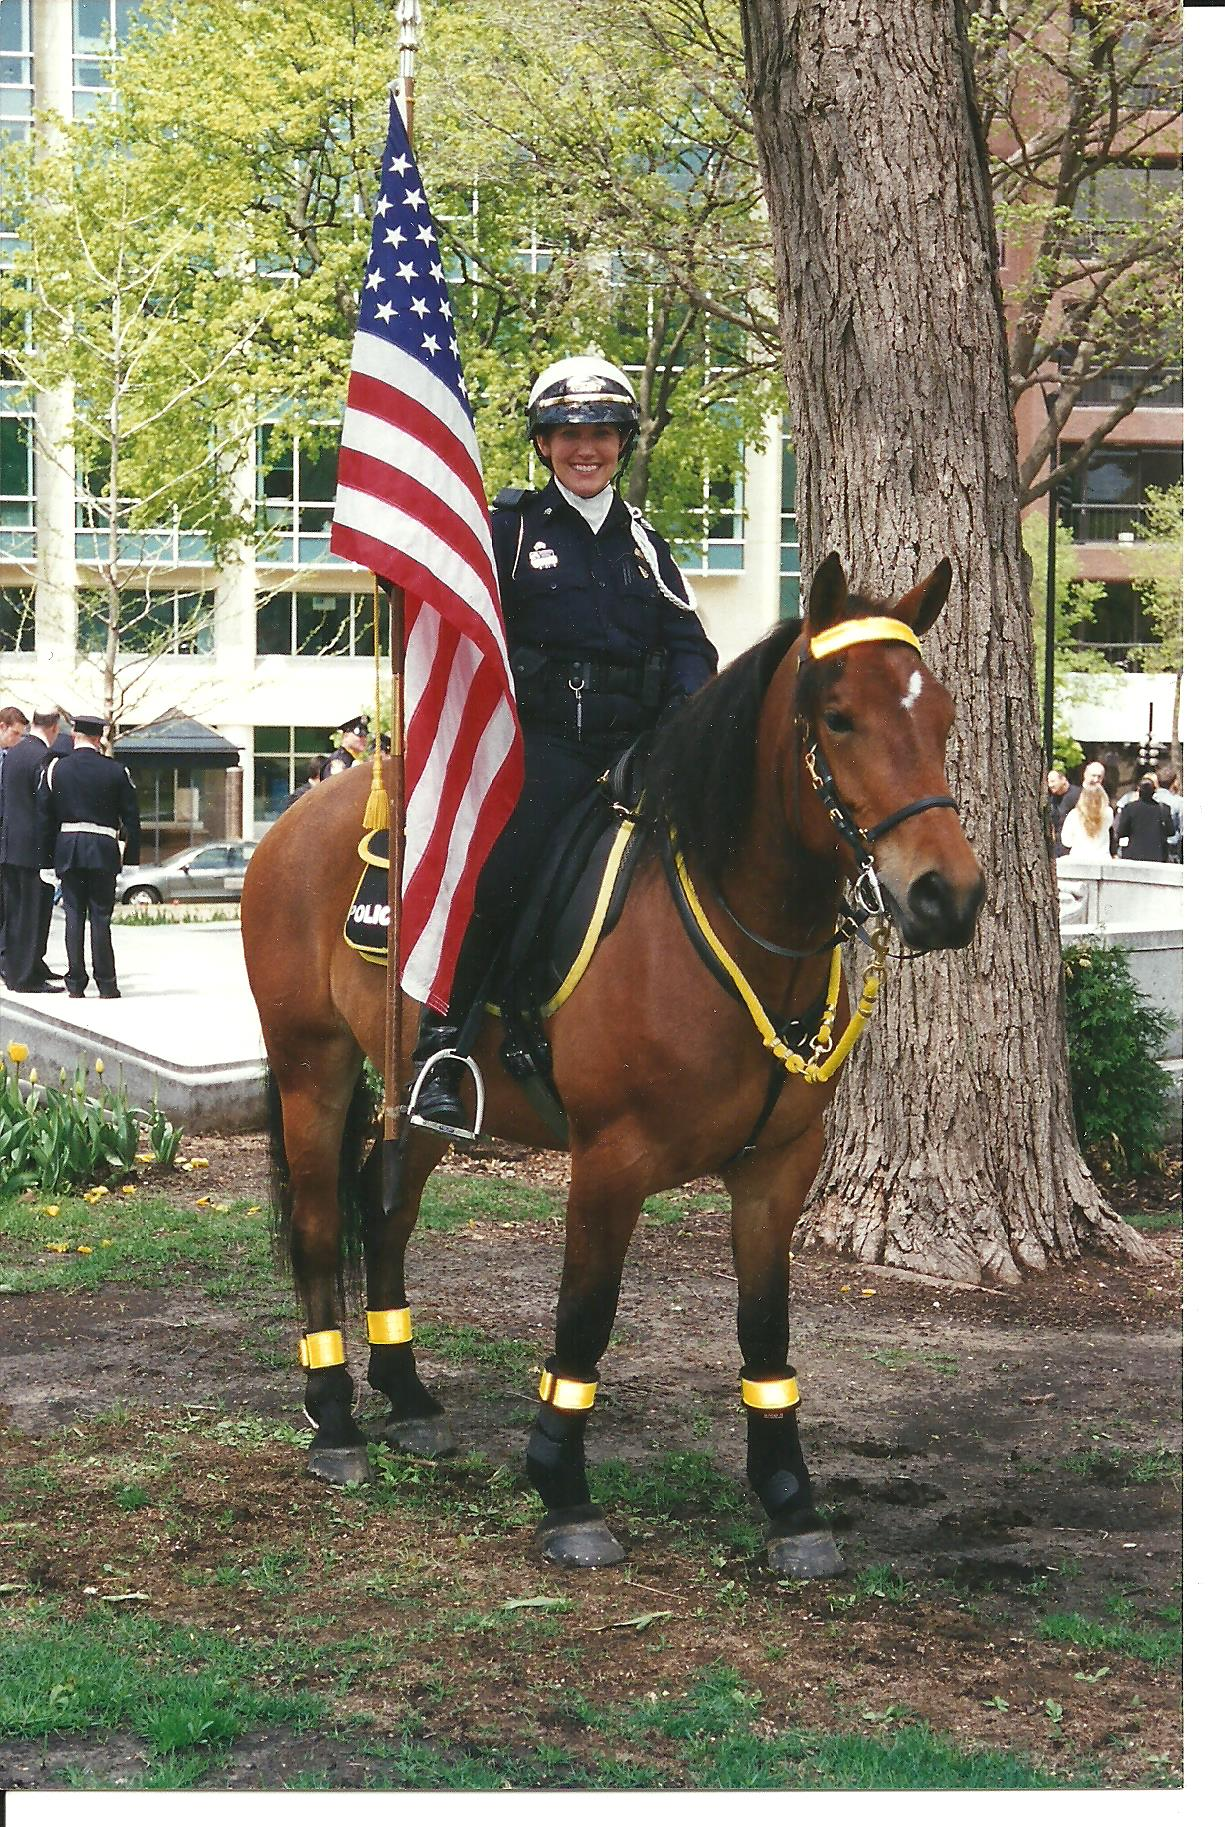 HotShot and Flag 2003 001